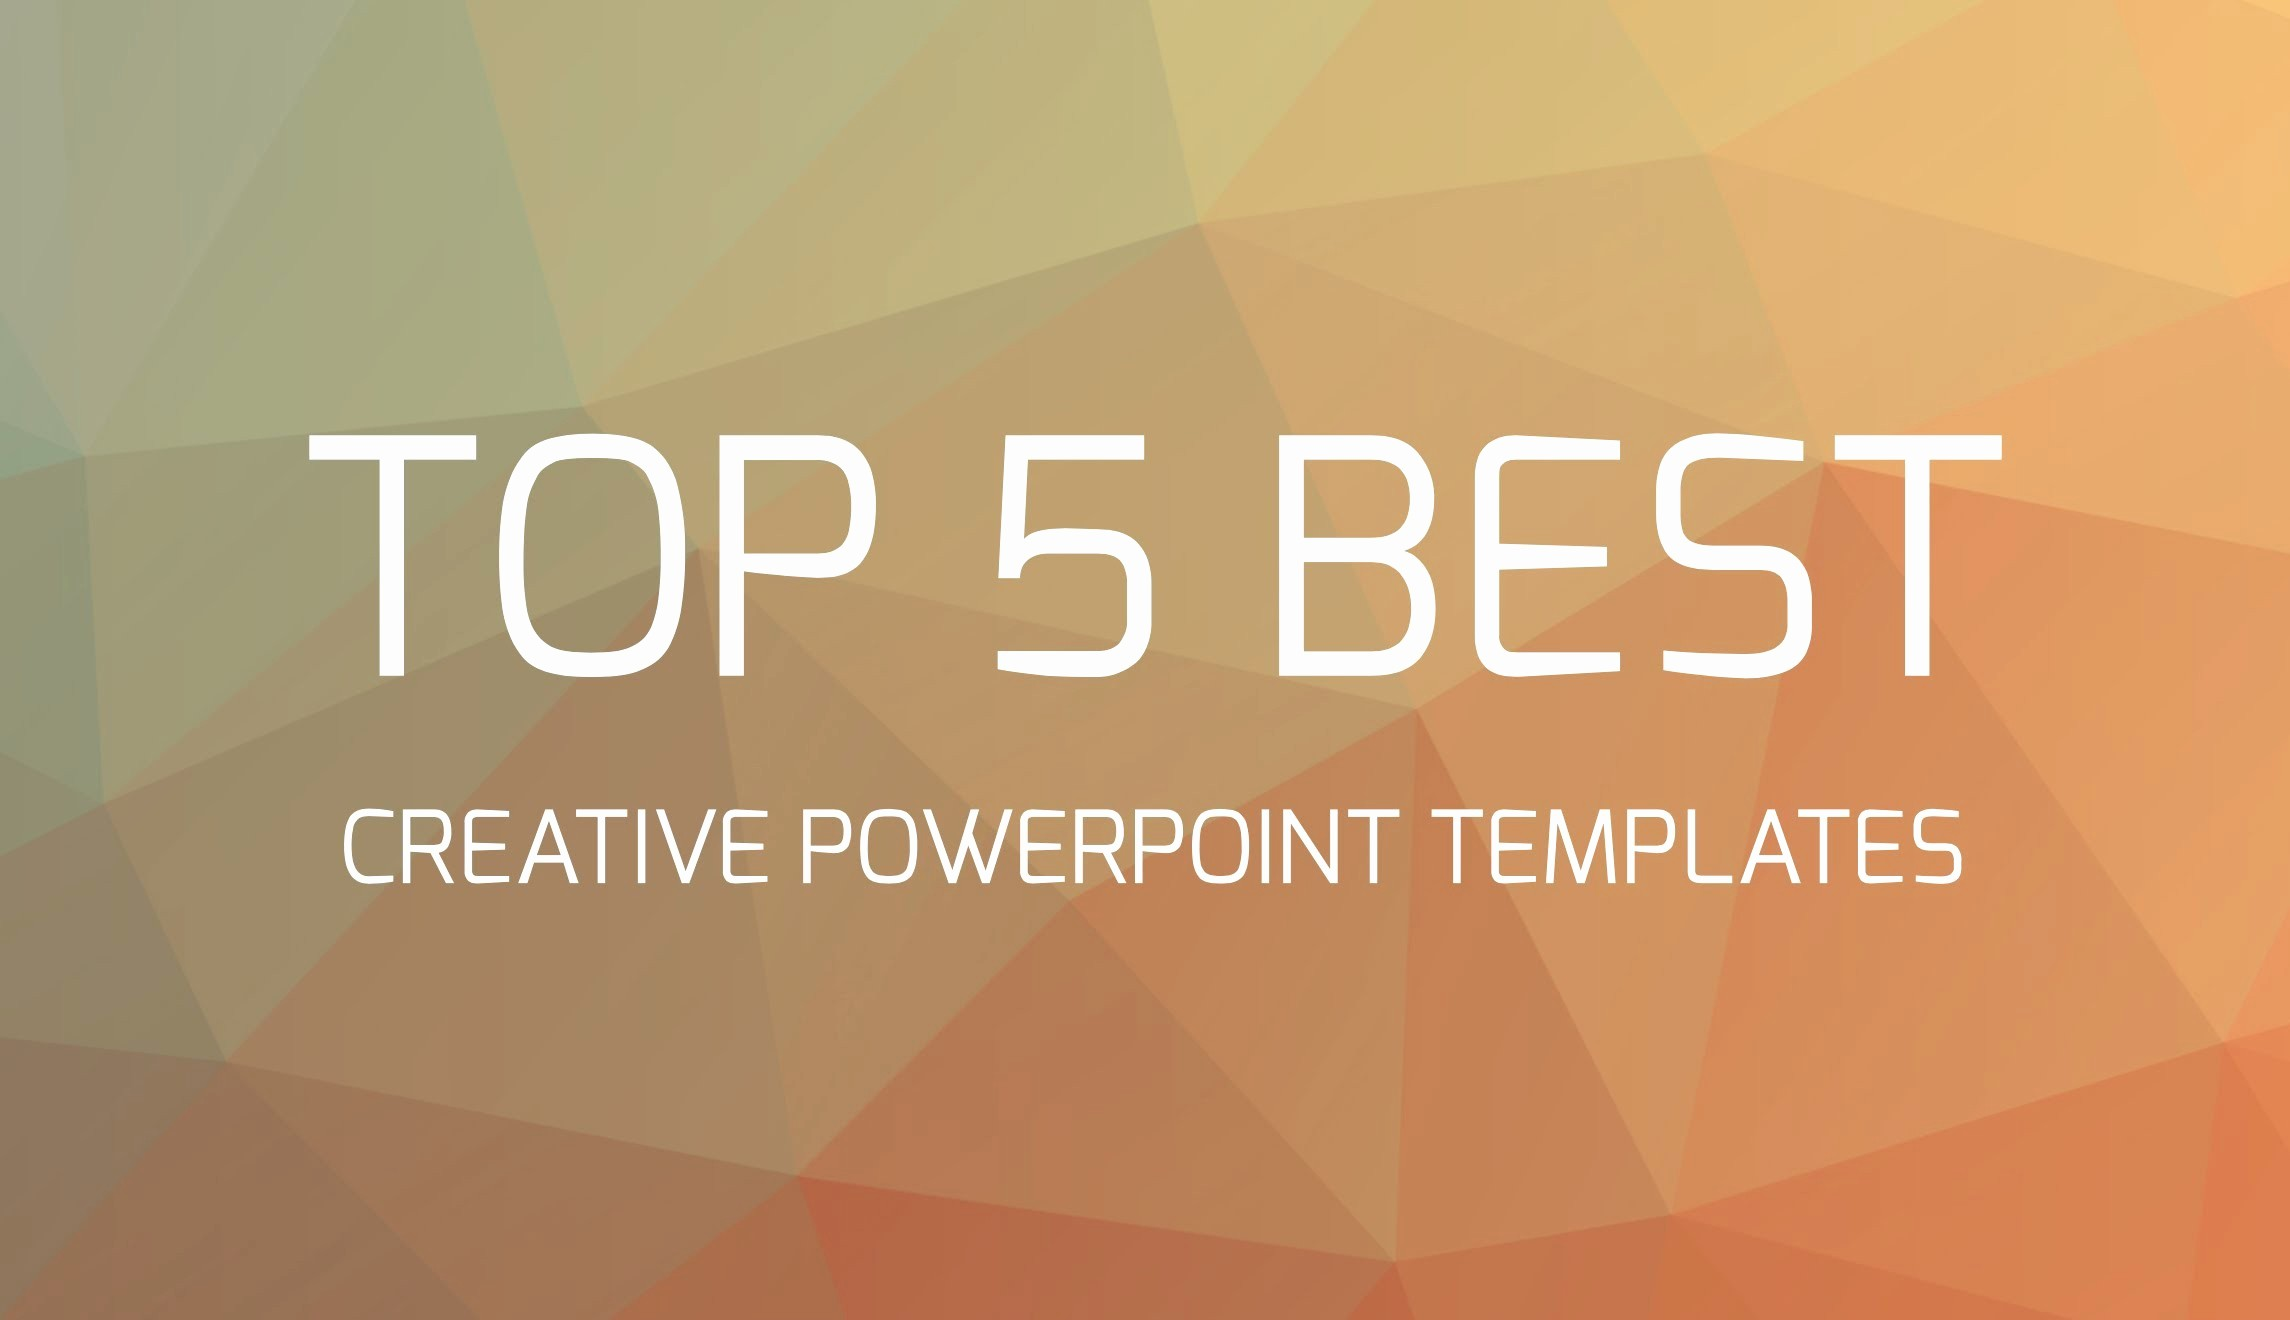 Powerpoint Presentation Design Free Download New 42 Cool Powerpoint Backgrounds ·① Download Free Awesome